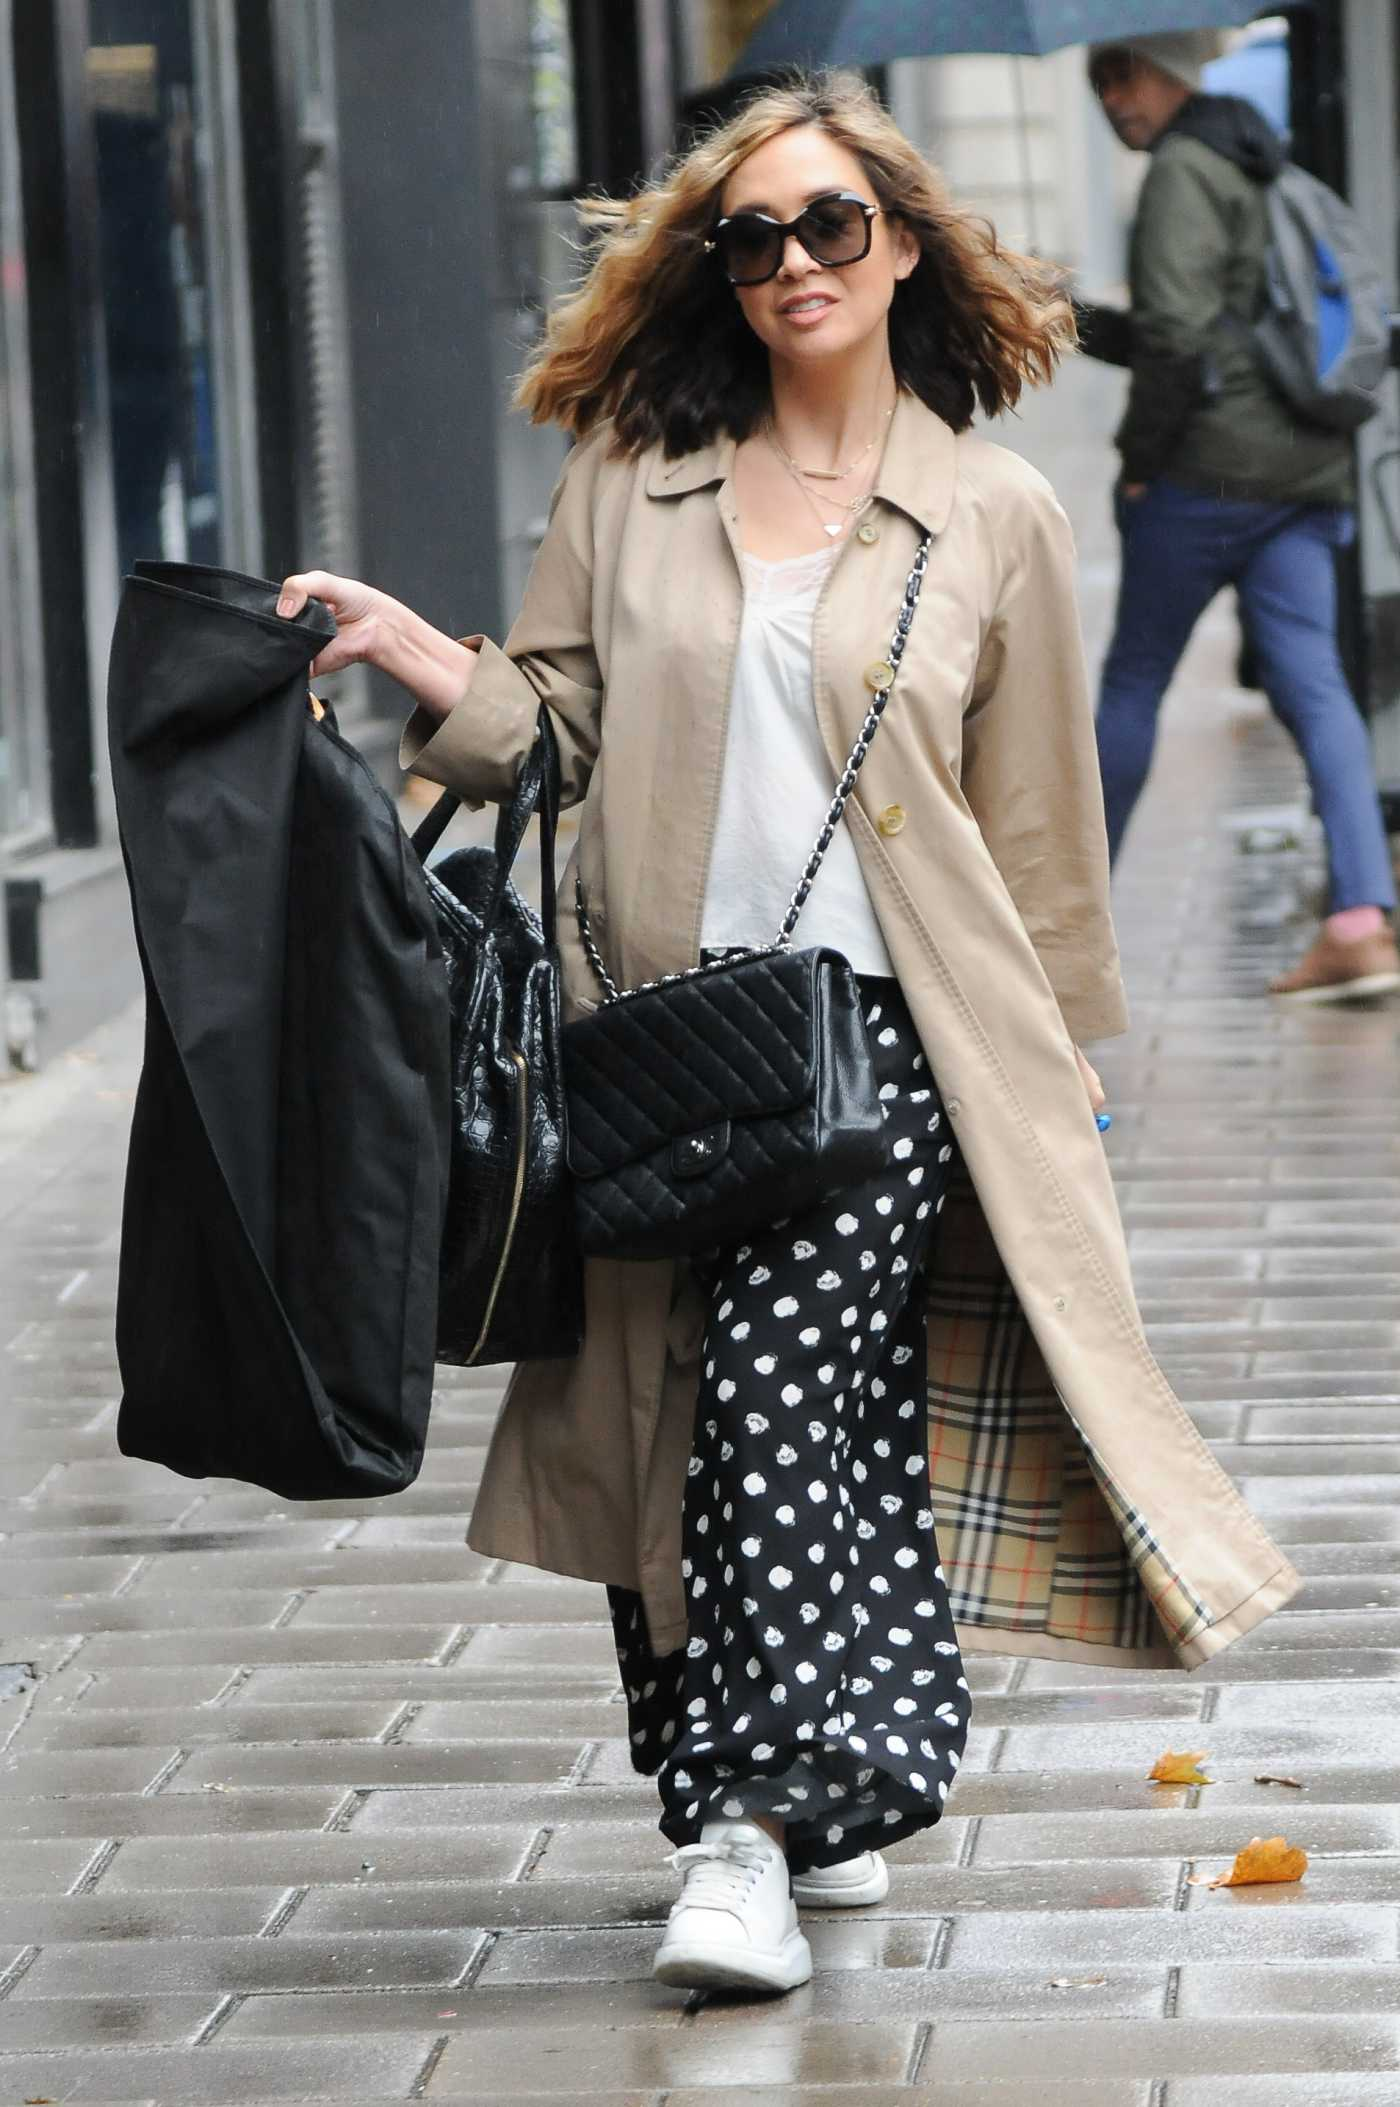 Myleene Klass in a Beige Trench Coat Arrives at the Global Studios in London 10/27/2020